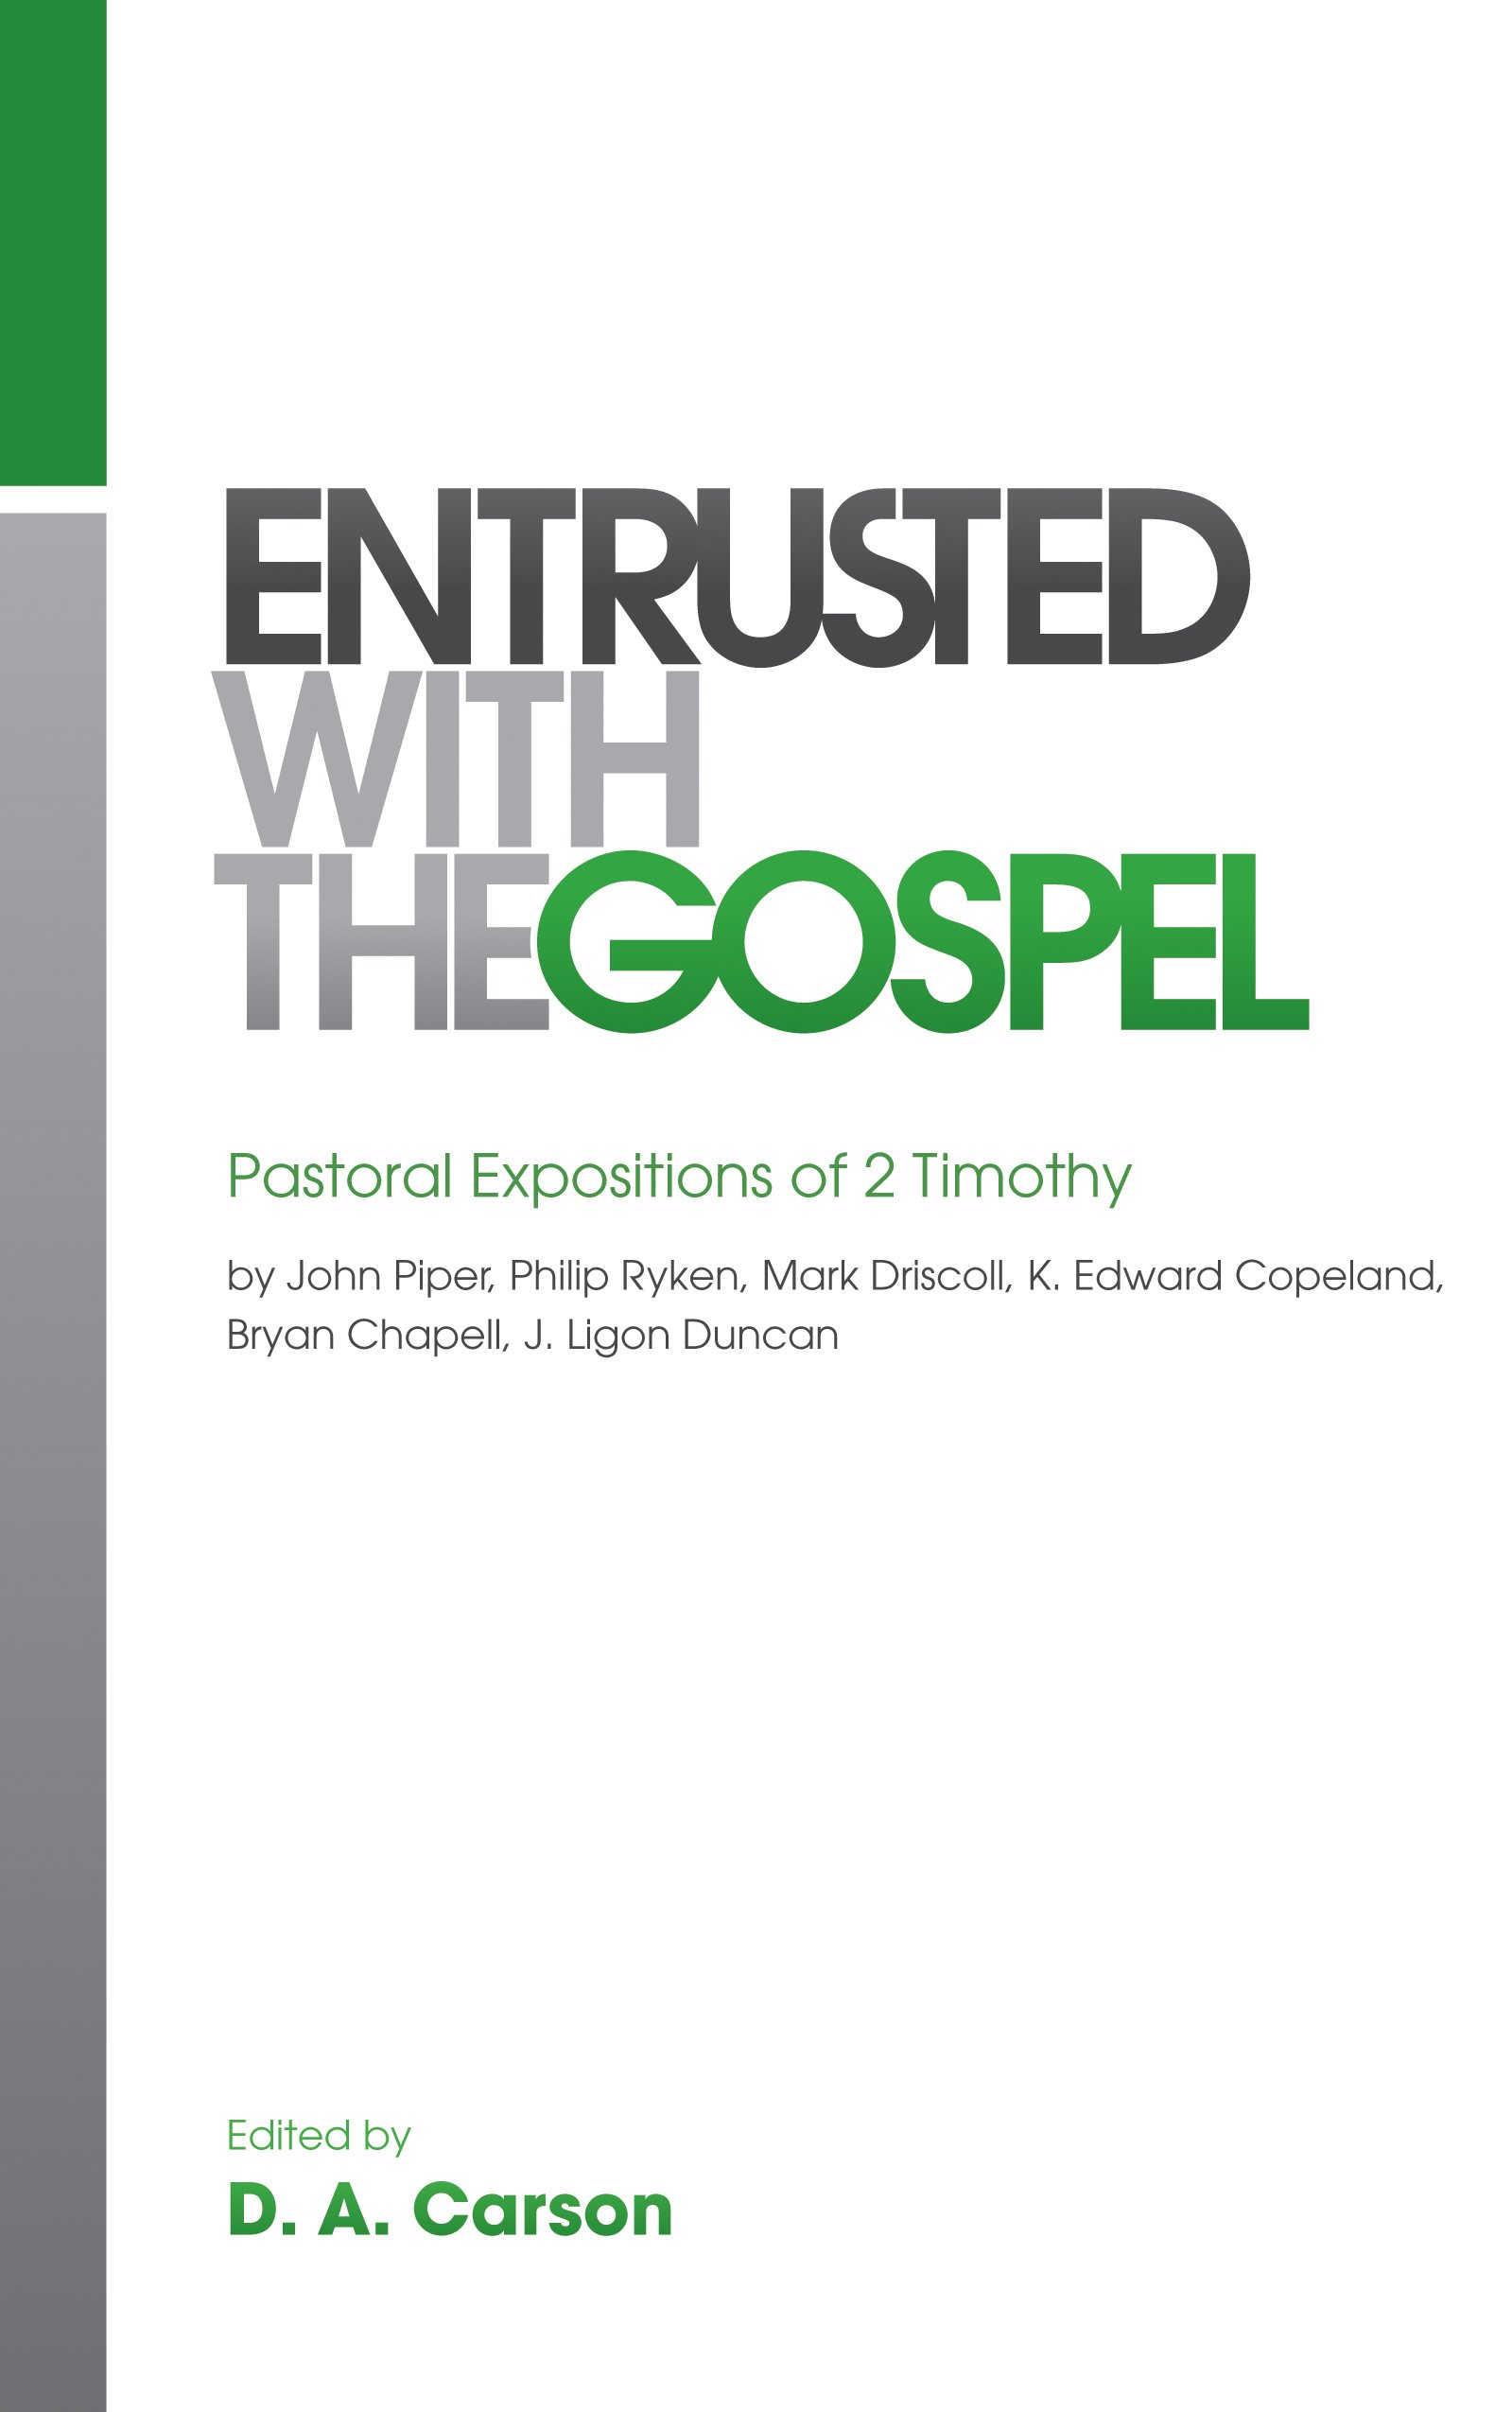 Download Entrusted with the Gospel: Pastoral Expositions of 2 Timothy by John Piper, Philip Ryken, Mark Driscoll, K. Edward Copeland, Bryan Chapell, J. Ligon Duncan pdf epub